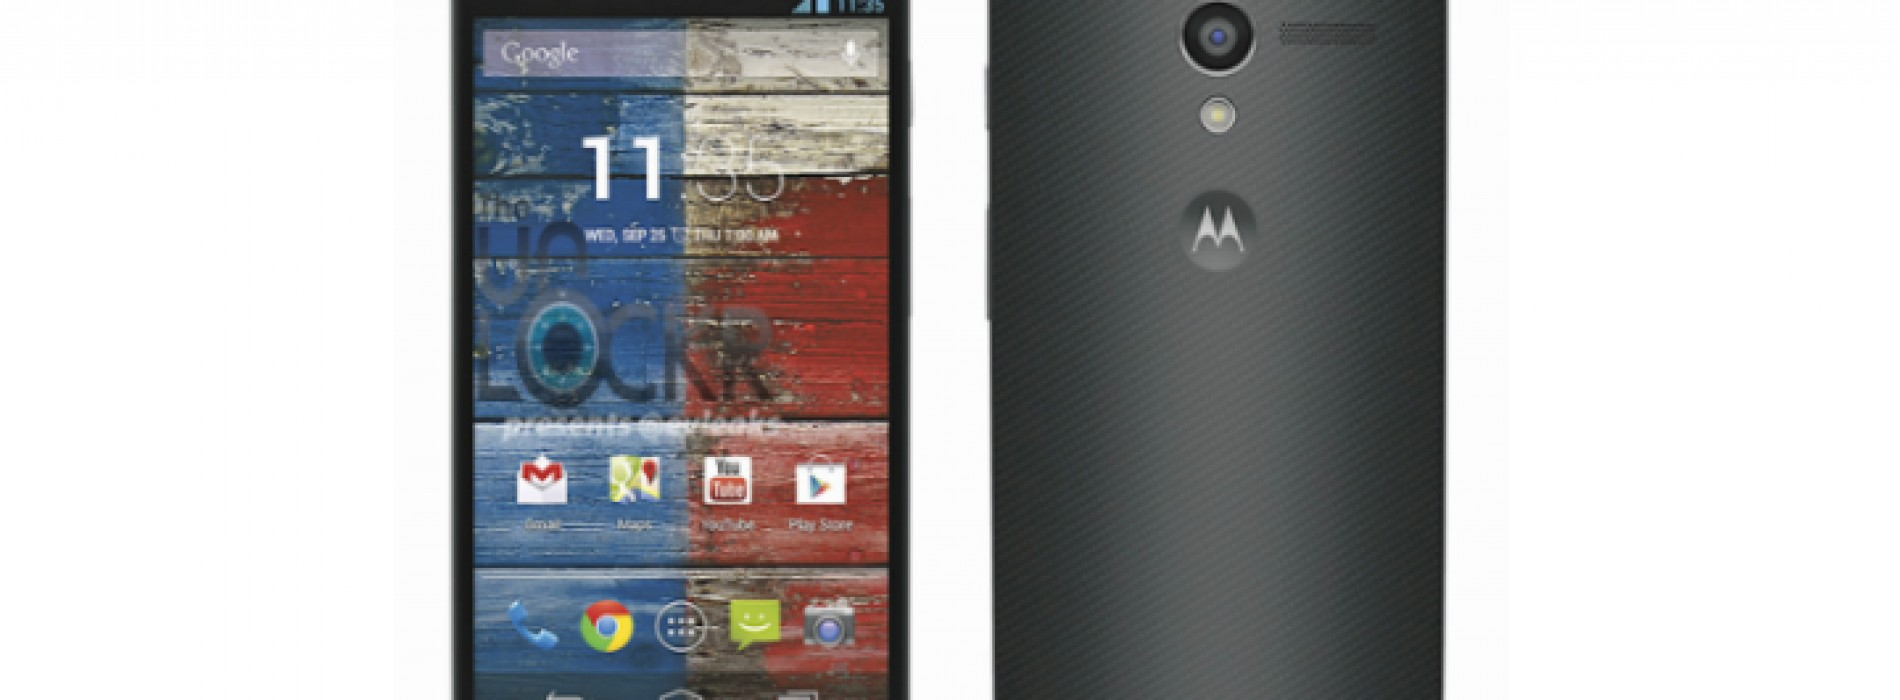 Moto X press image leaks ahead of formal unveiling